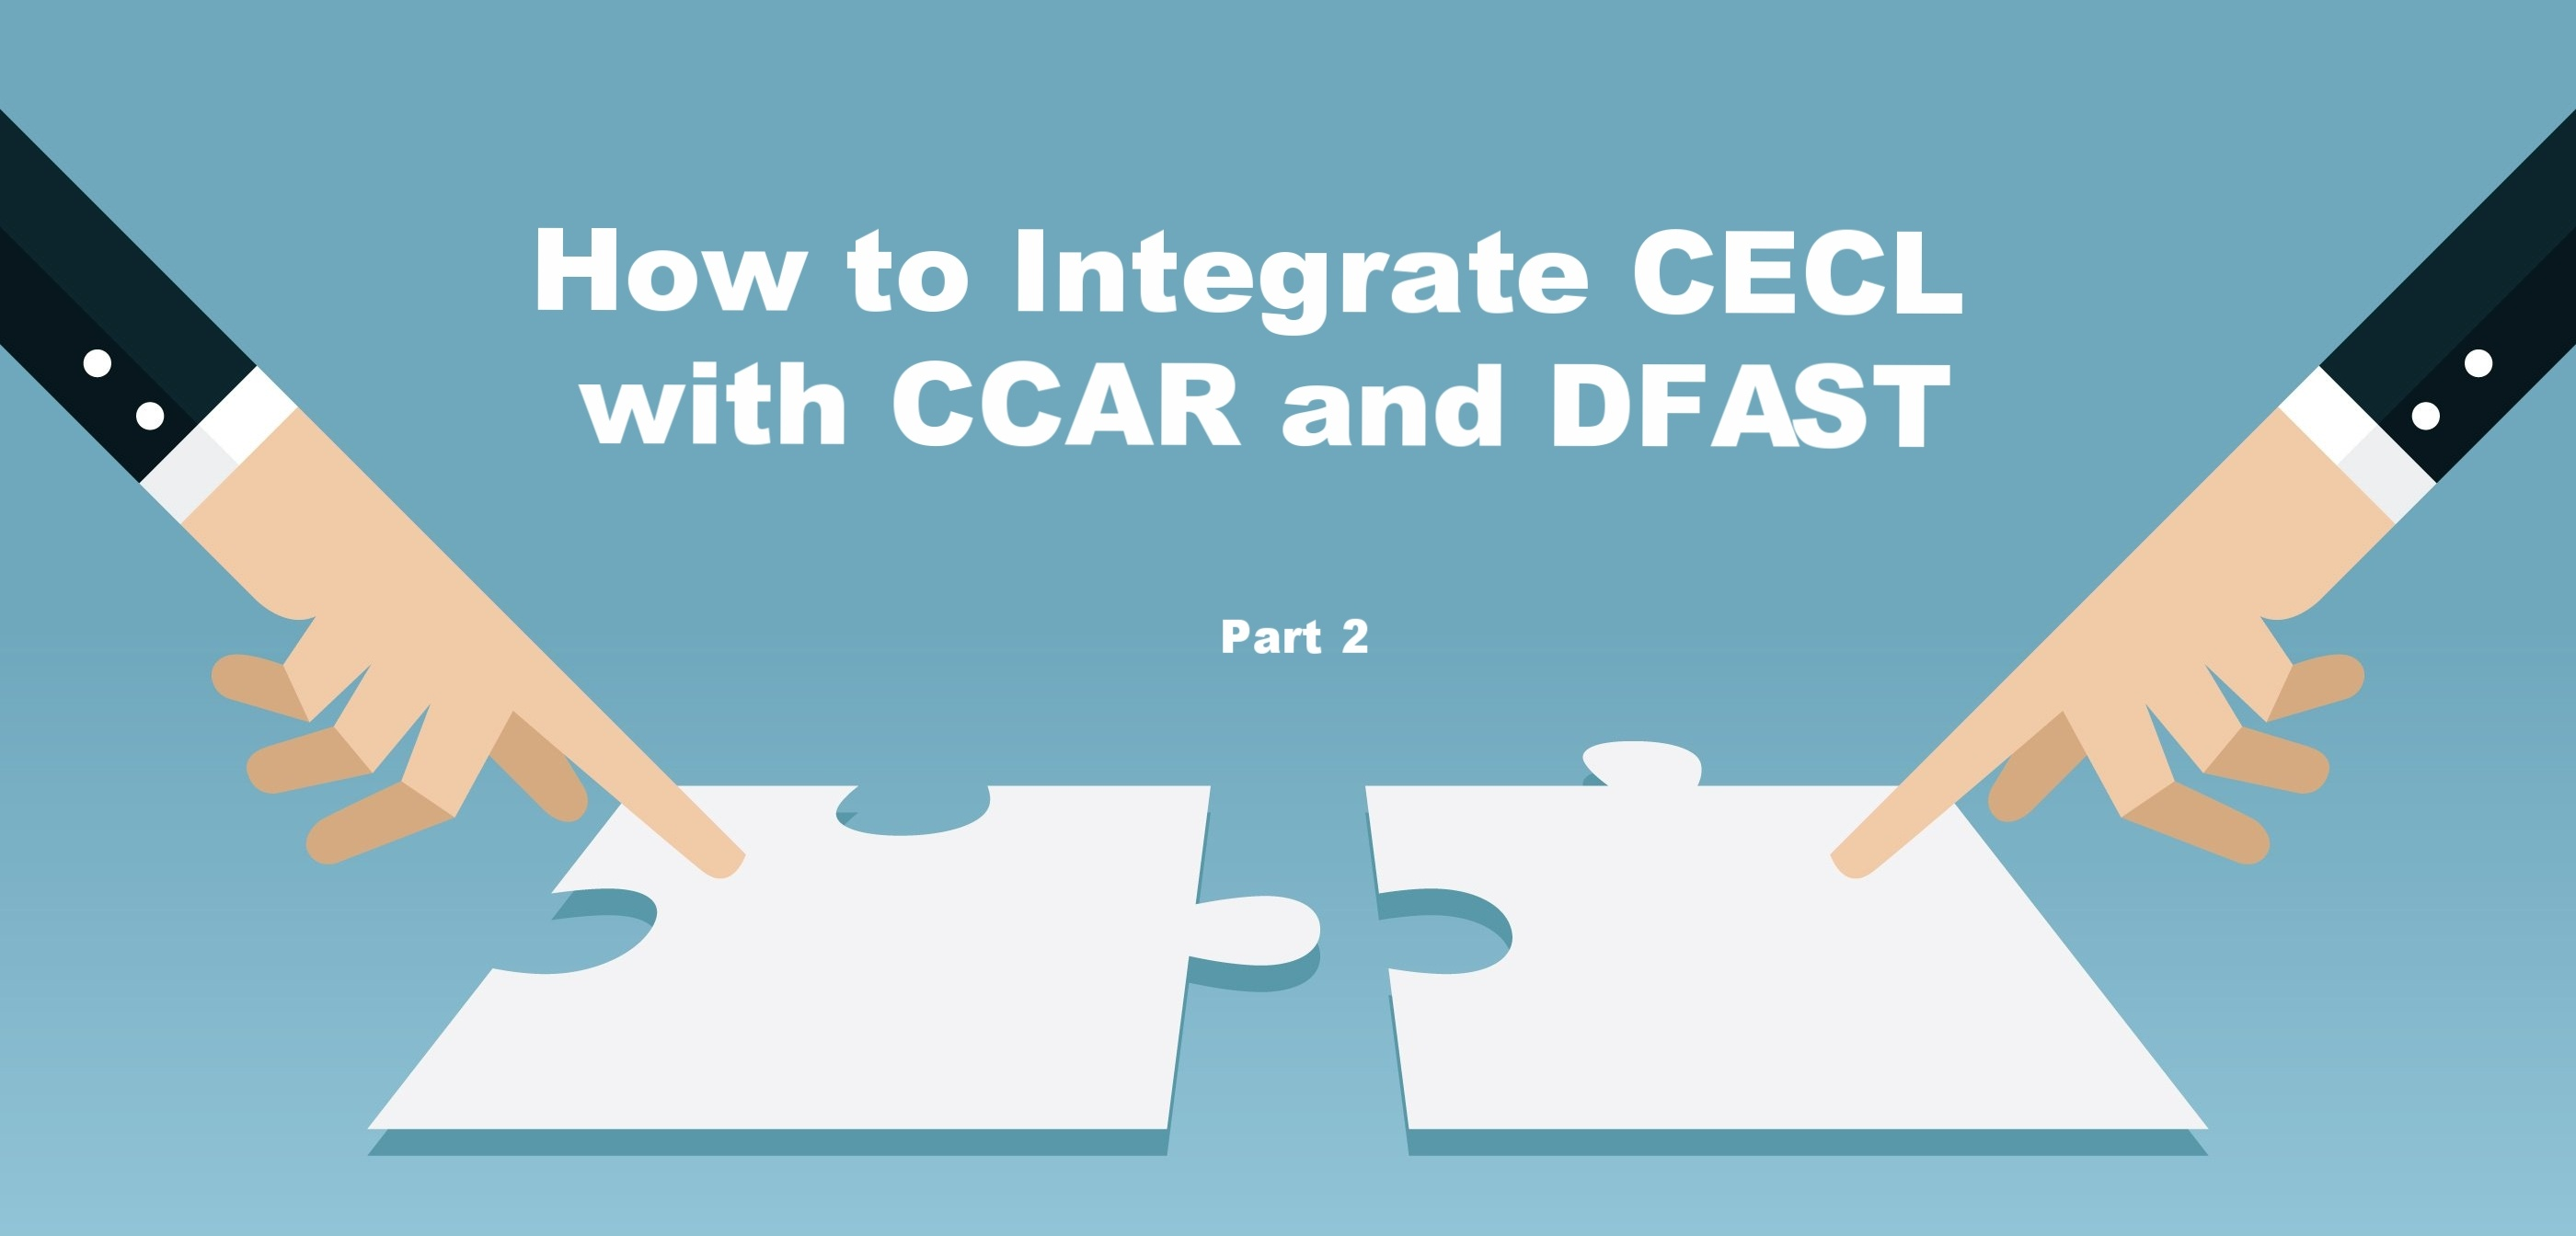 How to Integrate CECL with CCAR and DFAST, Part 2